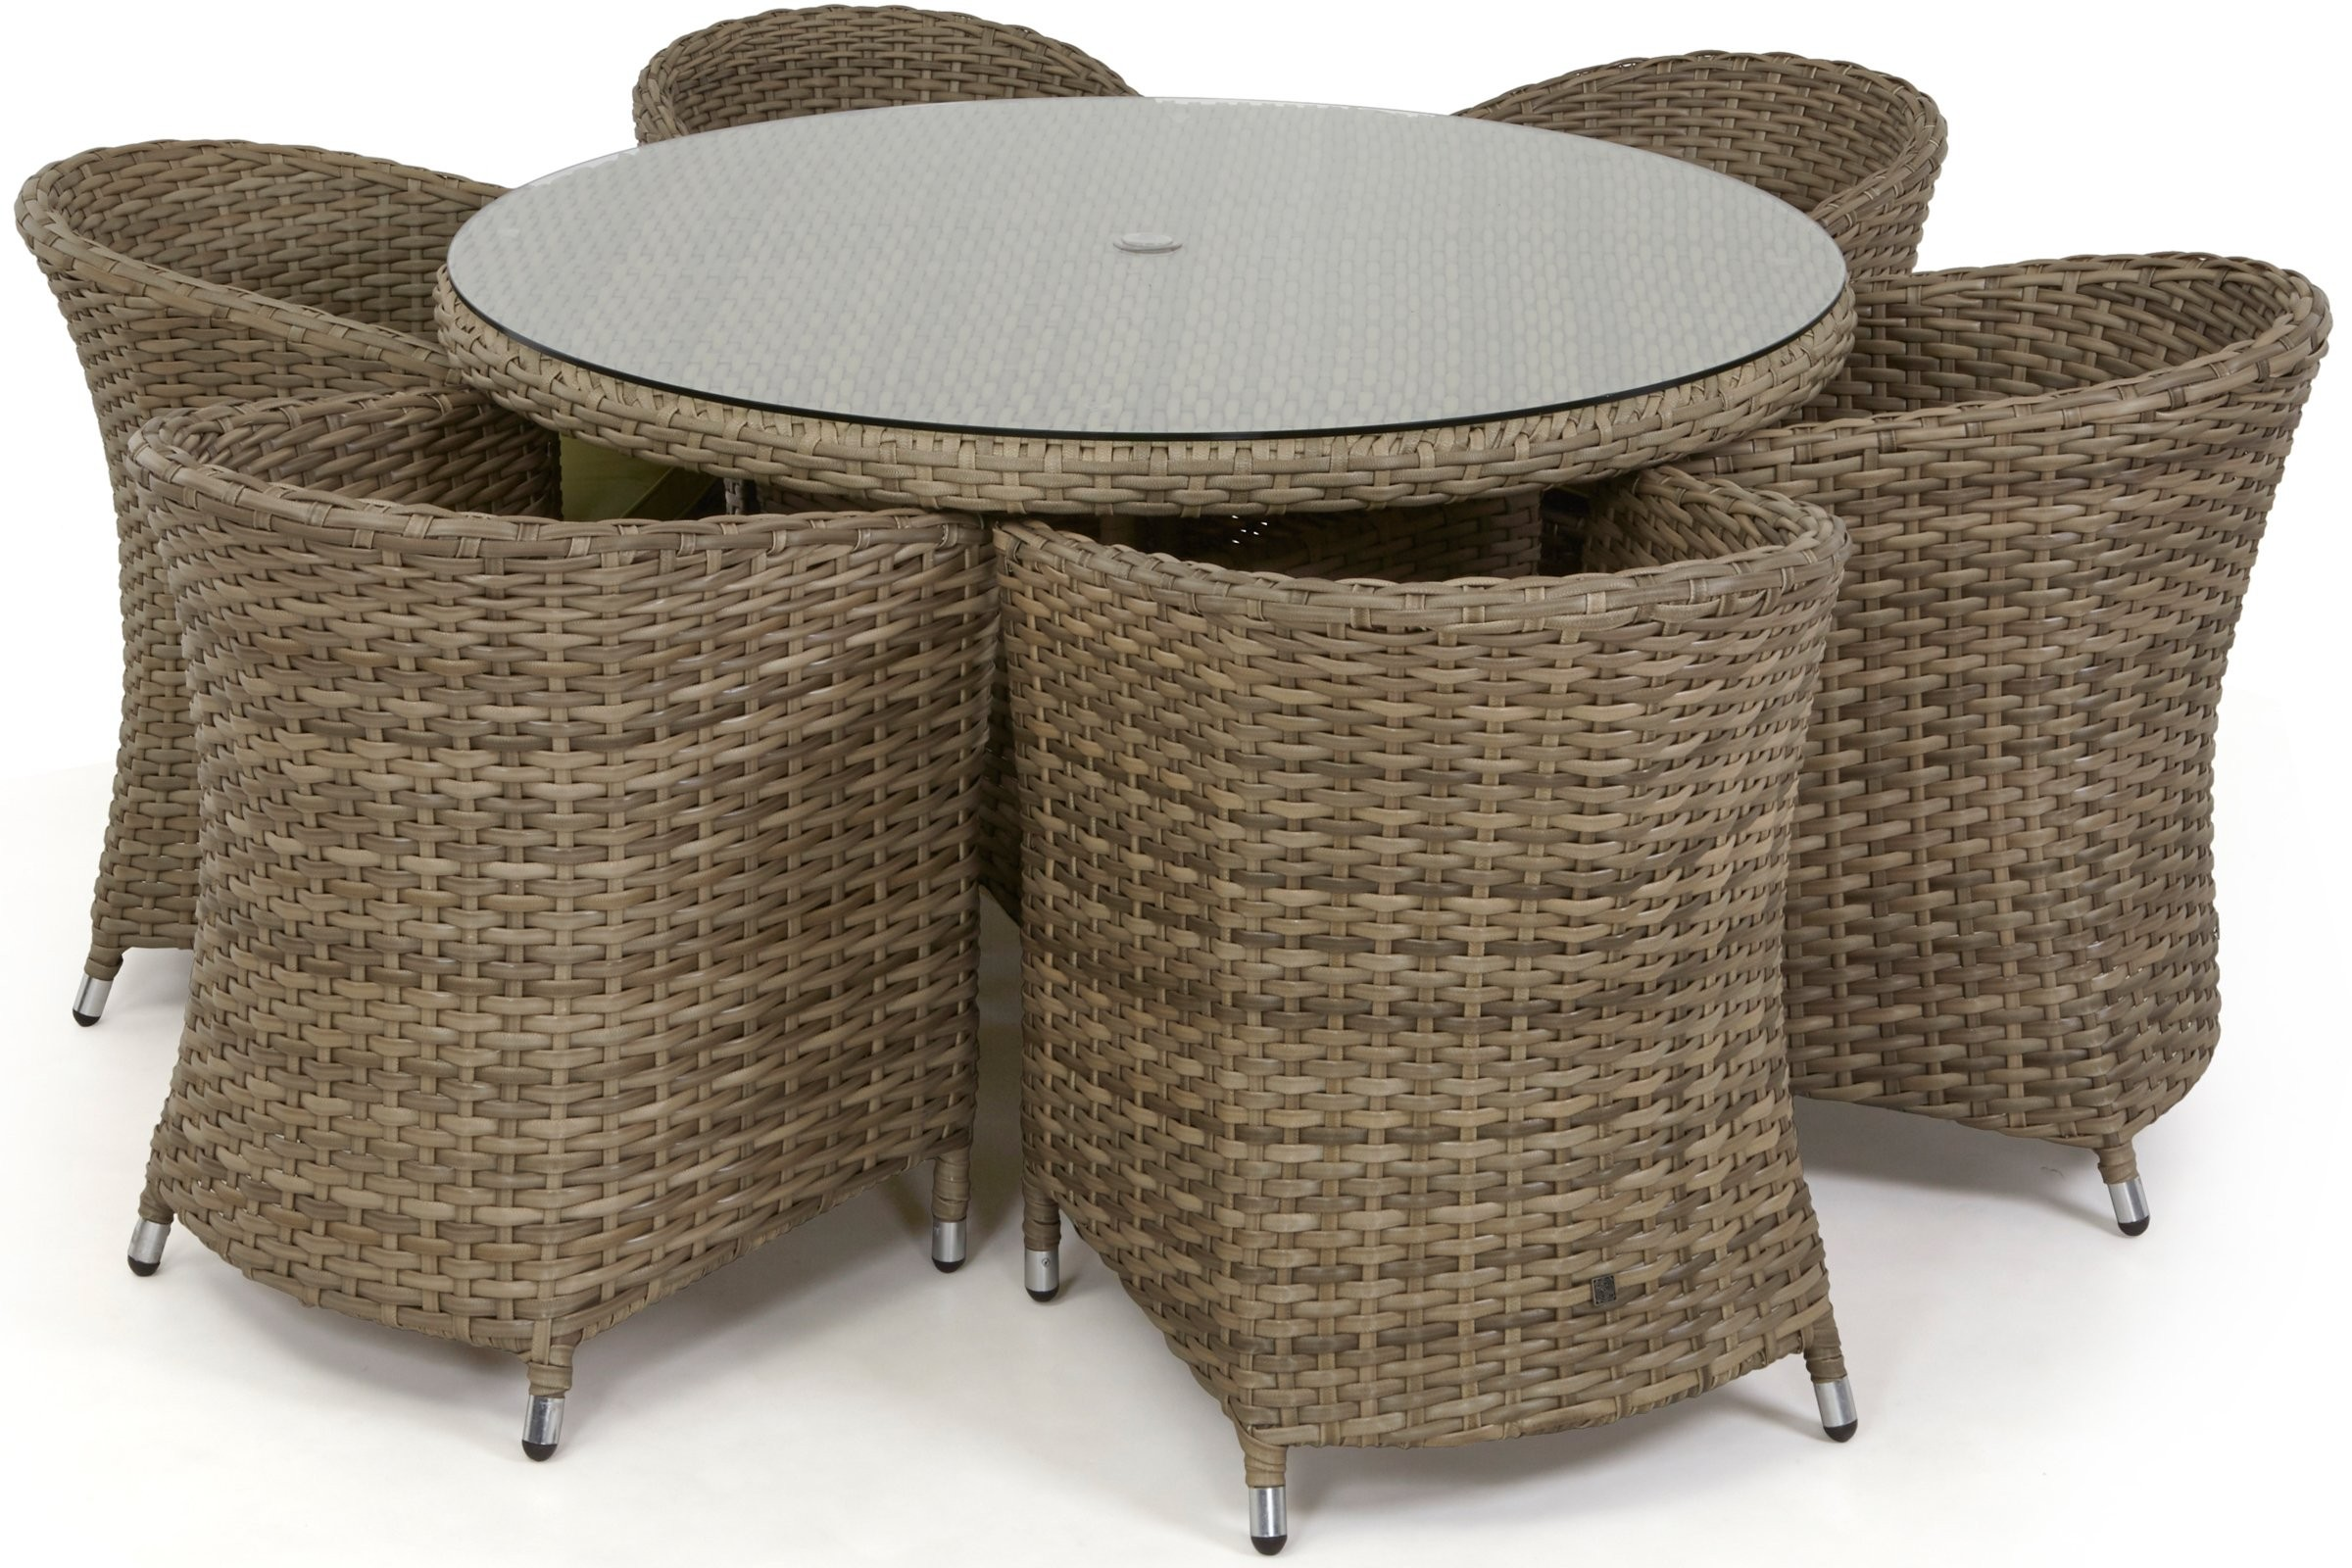 maze rattan natural milan corner sofa set green cushions lowest price 6 seat dining with rounded